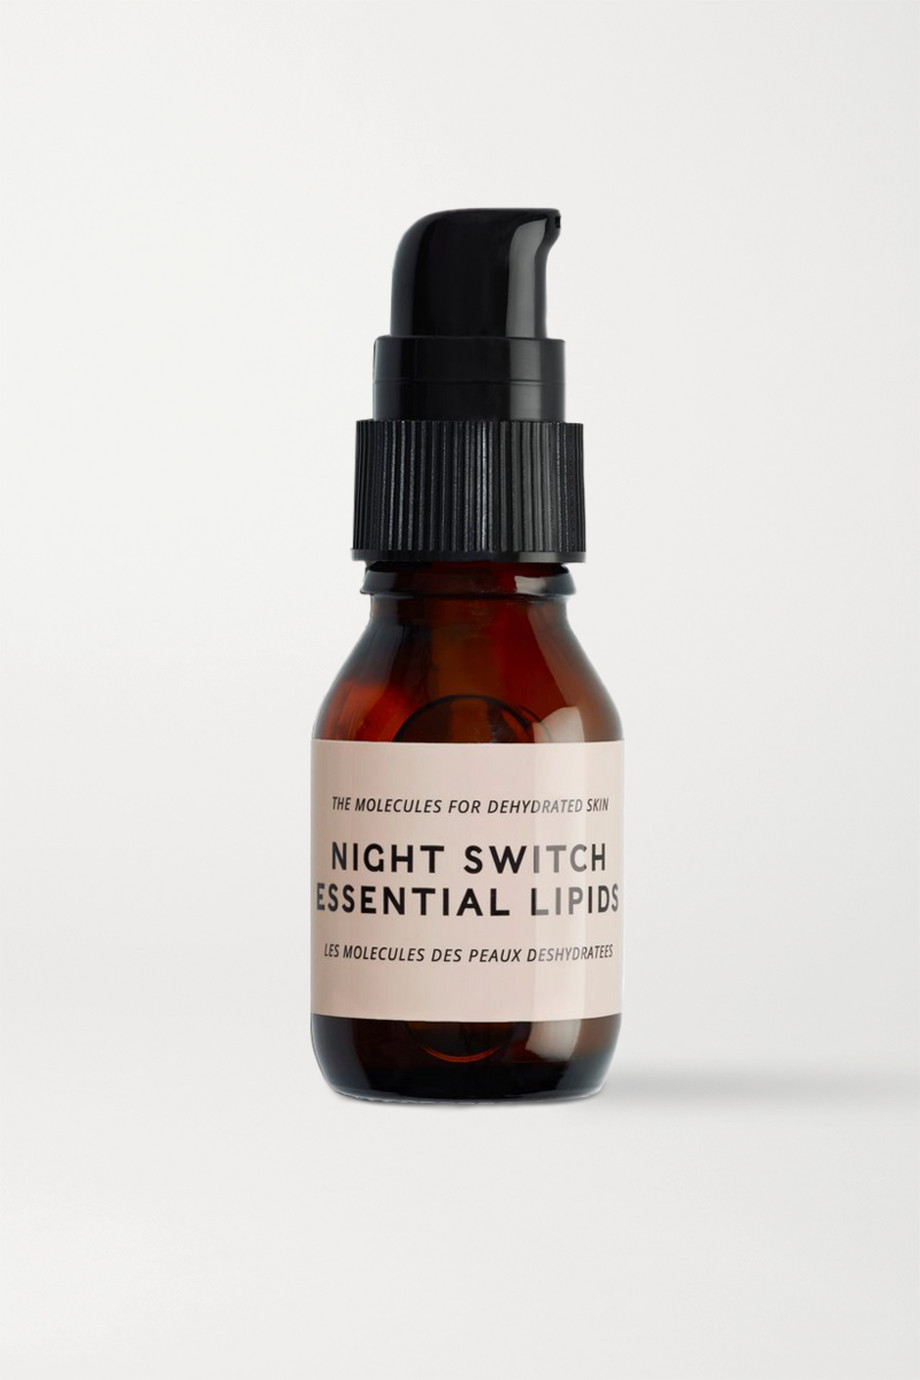 LIXIRSKIN Night Switch Essential Lipids, 15ml